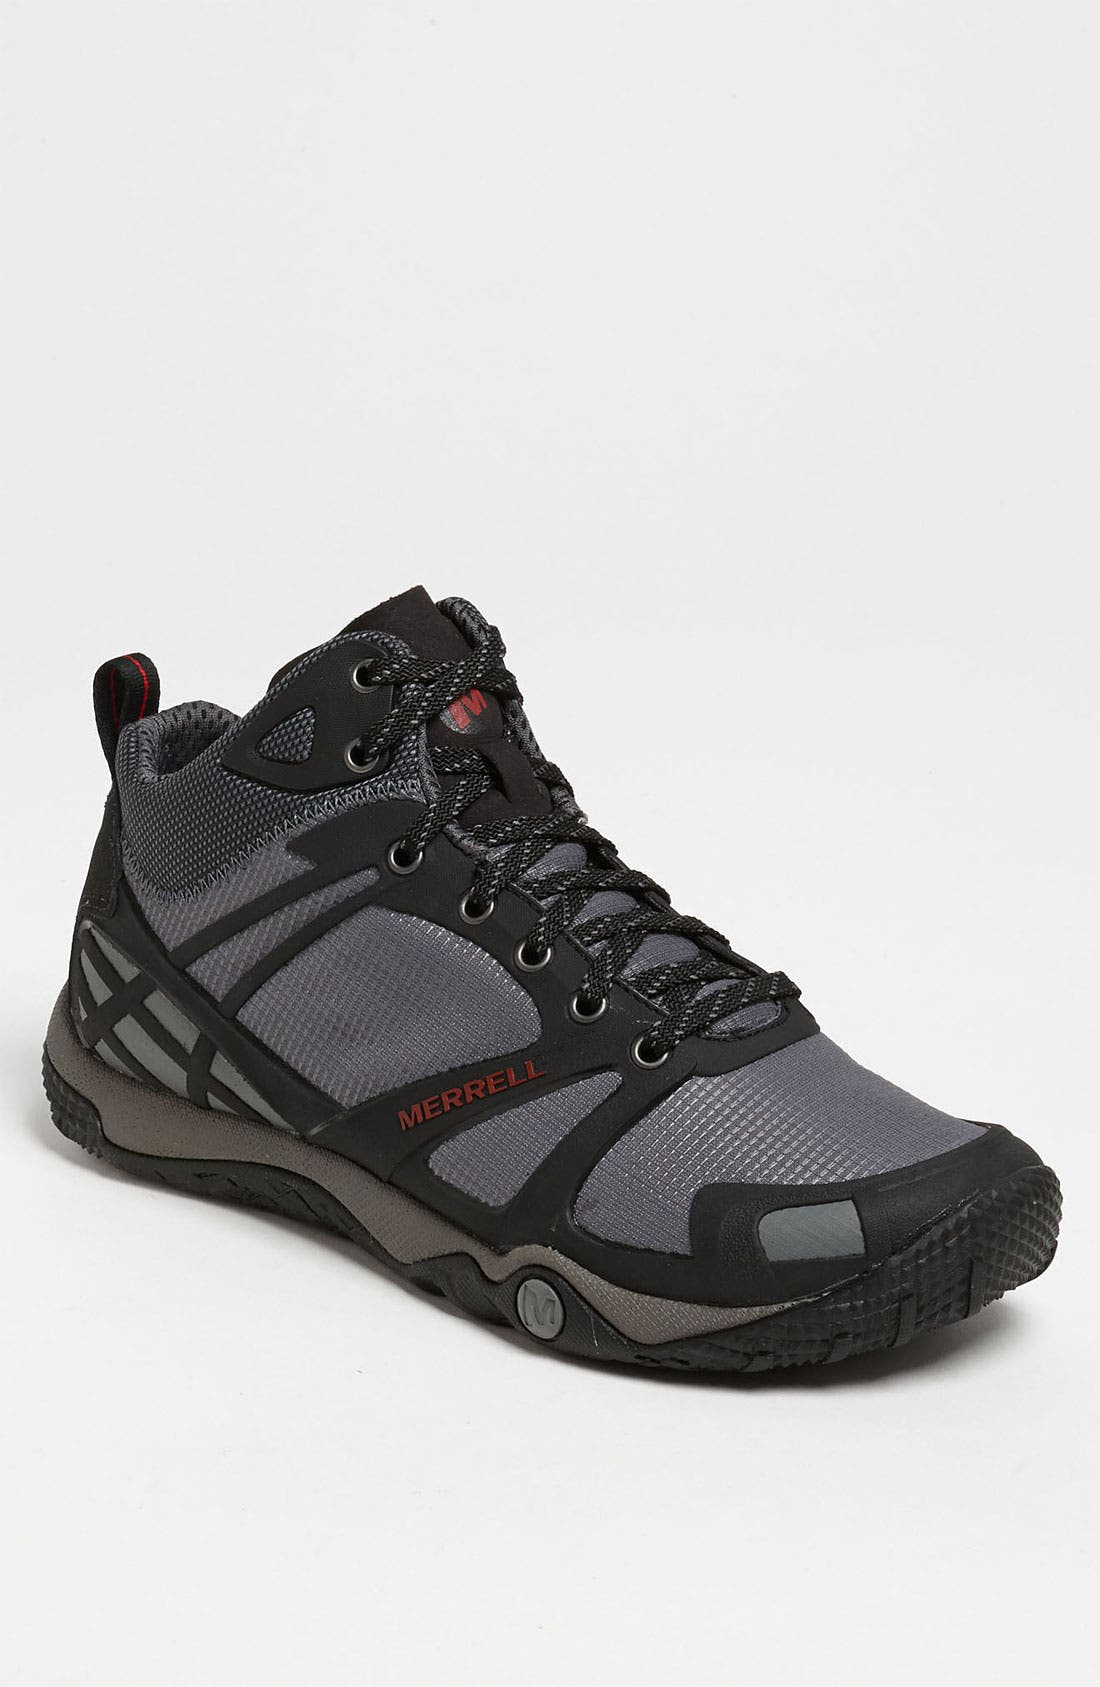 Alternate Image 1 Selected - Merrell 'Proterra Mid Sport' Hiking Boot (Men)